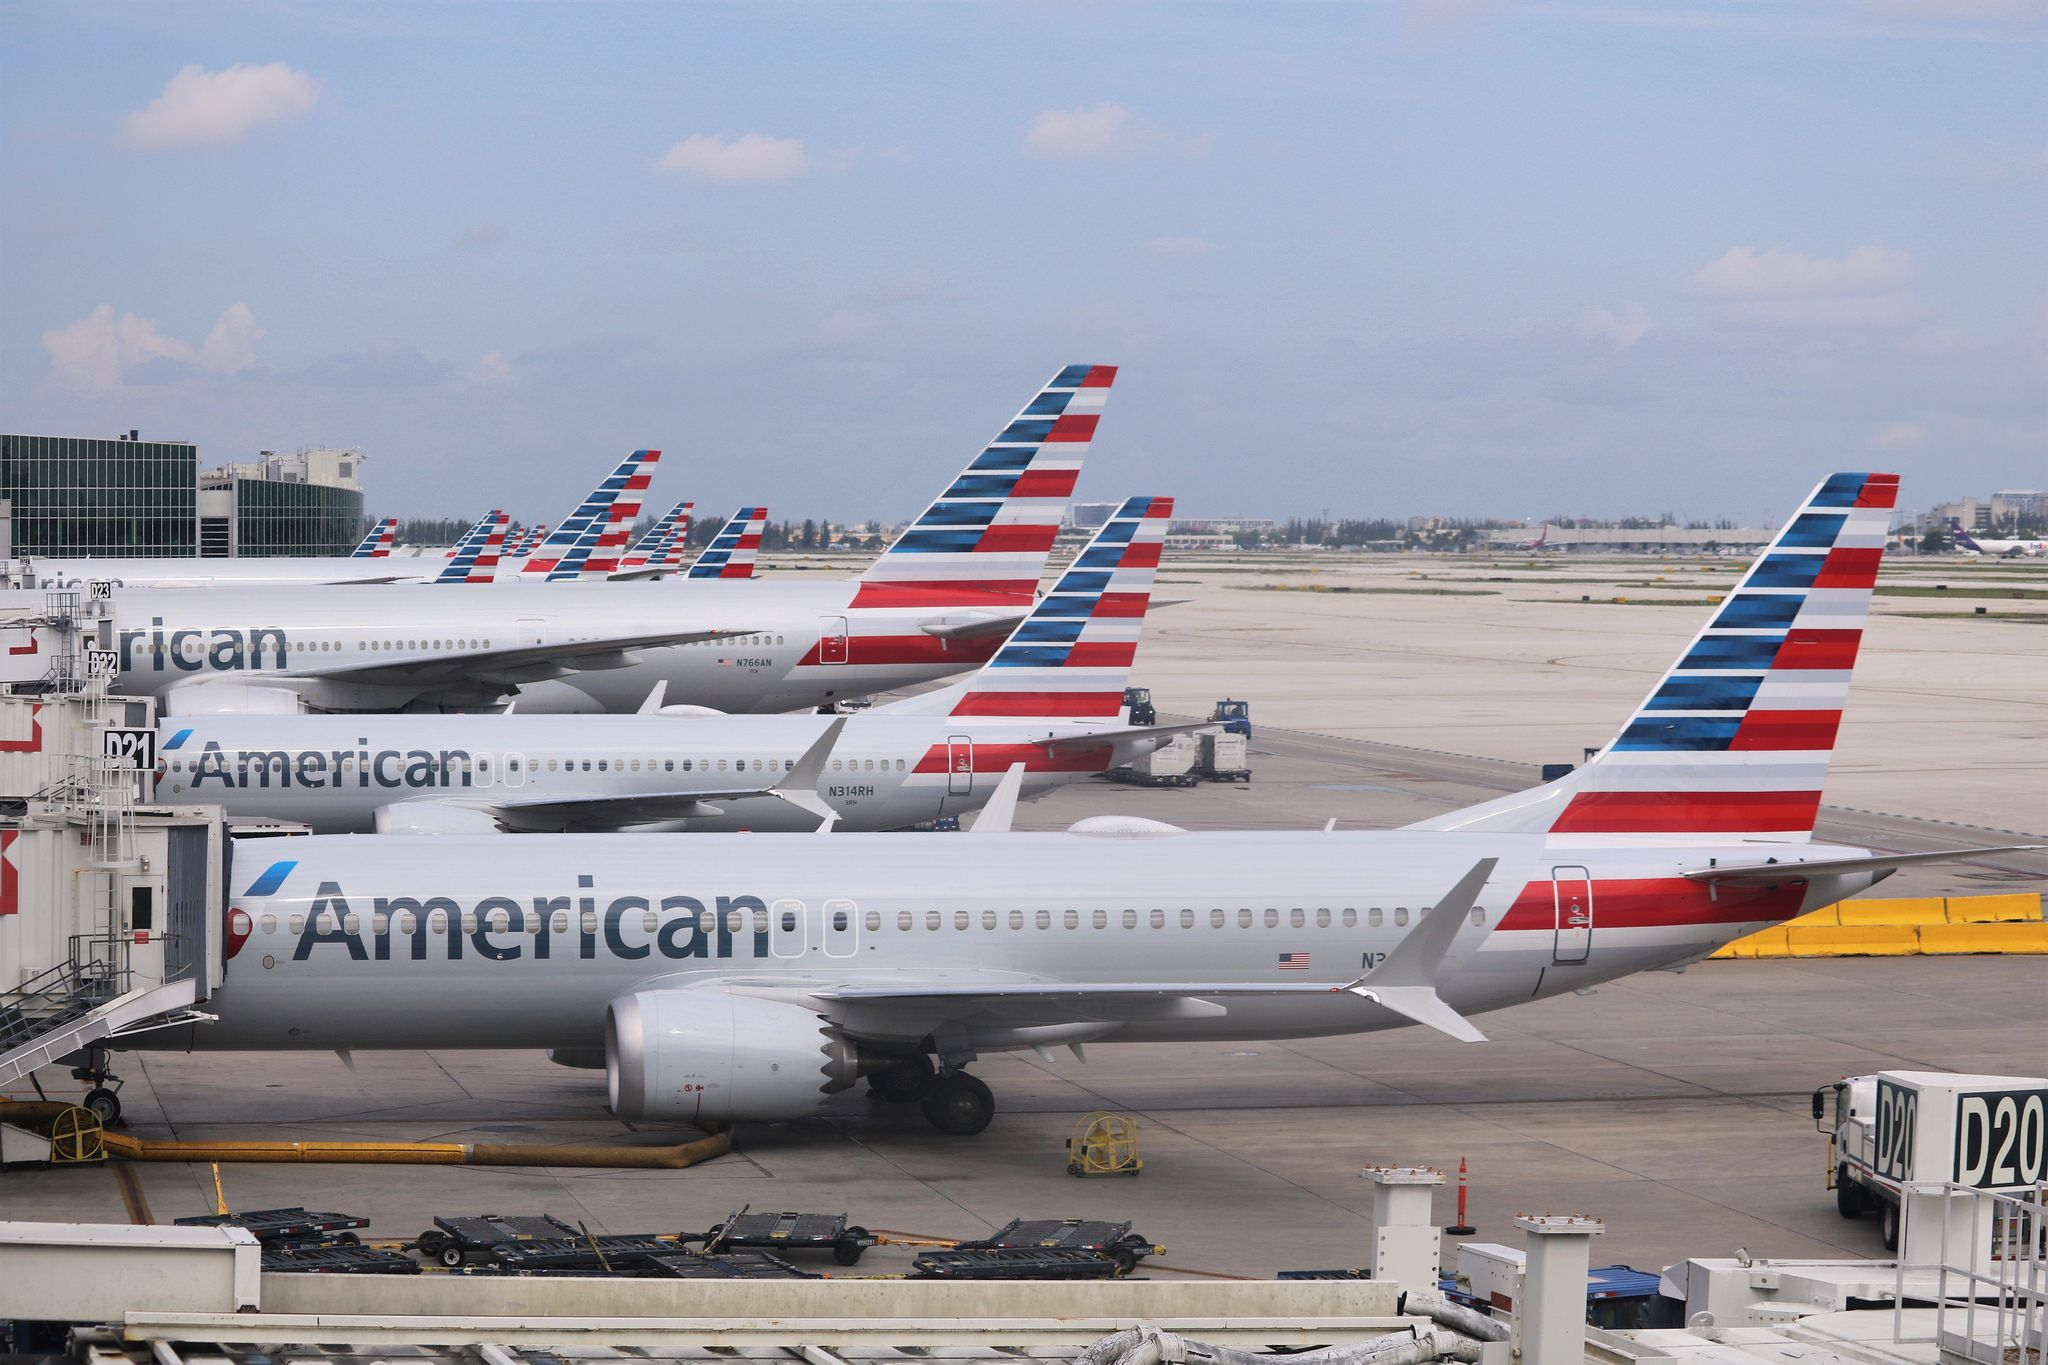 American Airlines lineup at Miami International Airport